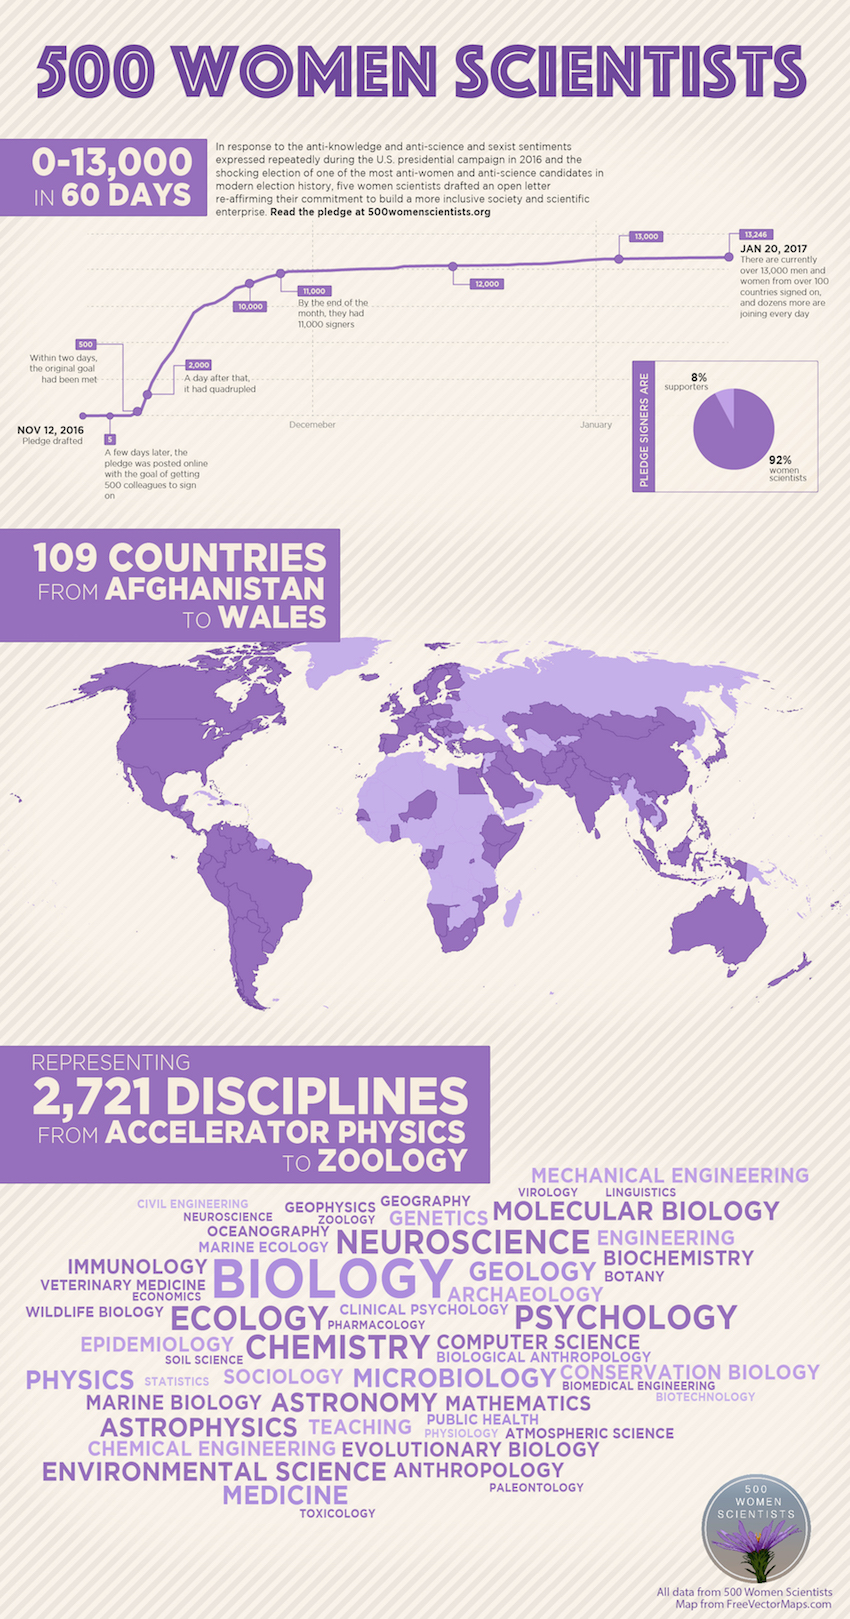 500 Women Scientists infographic